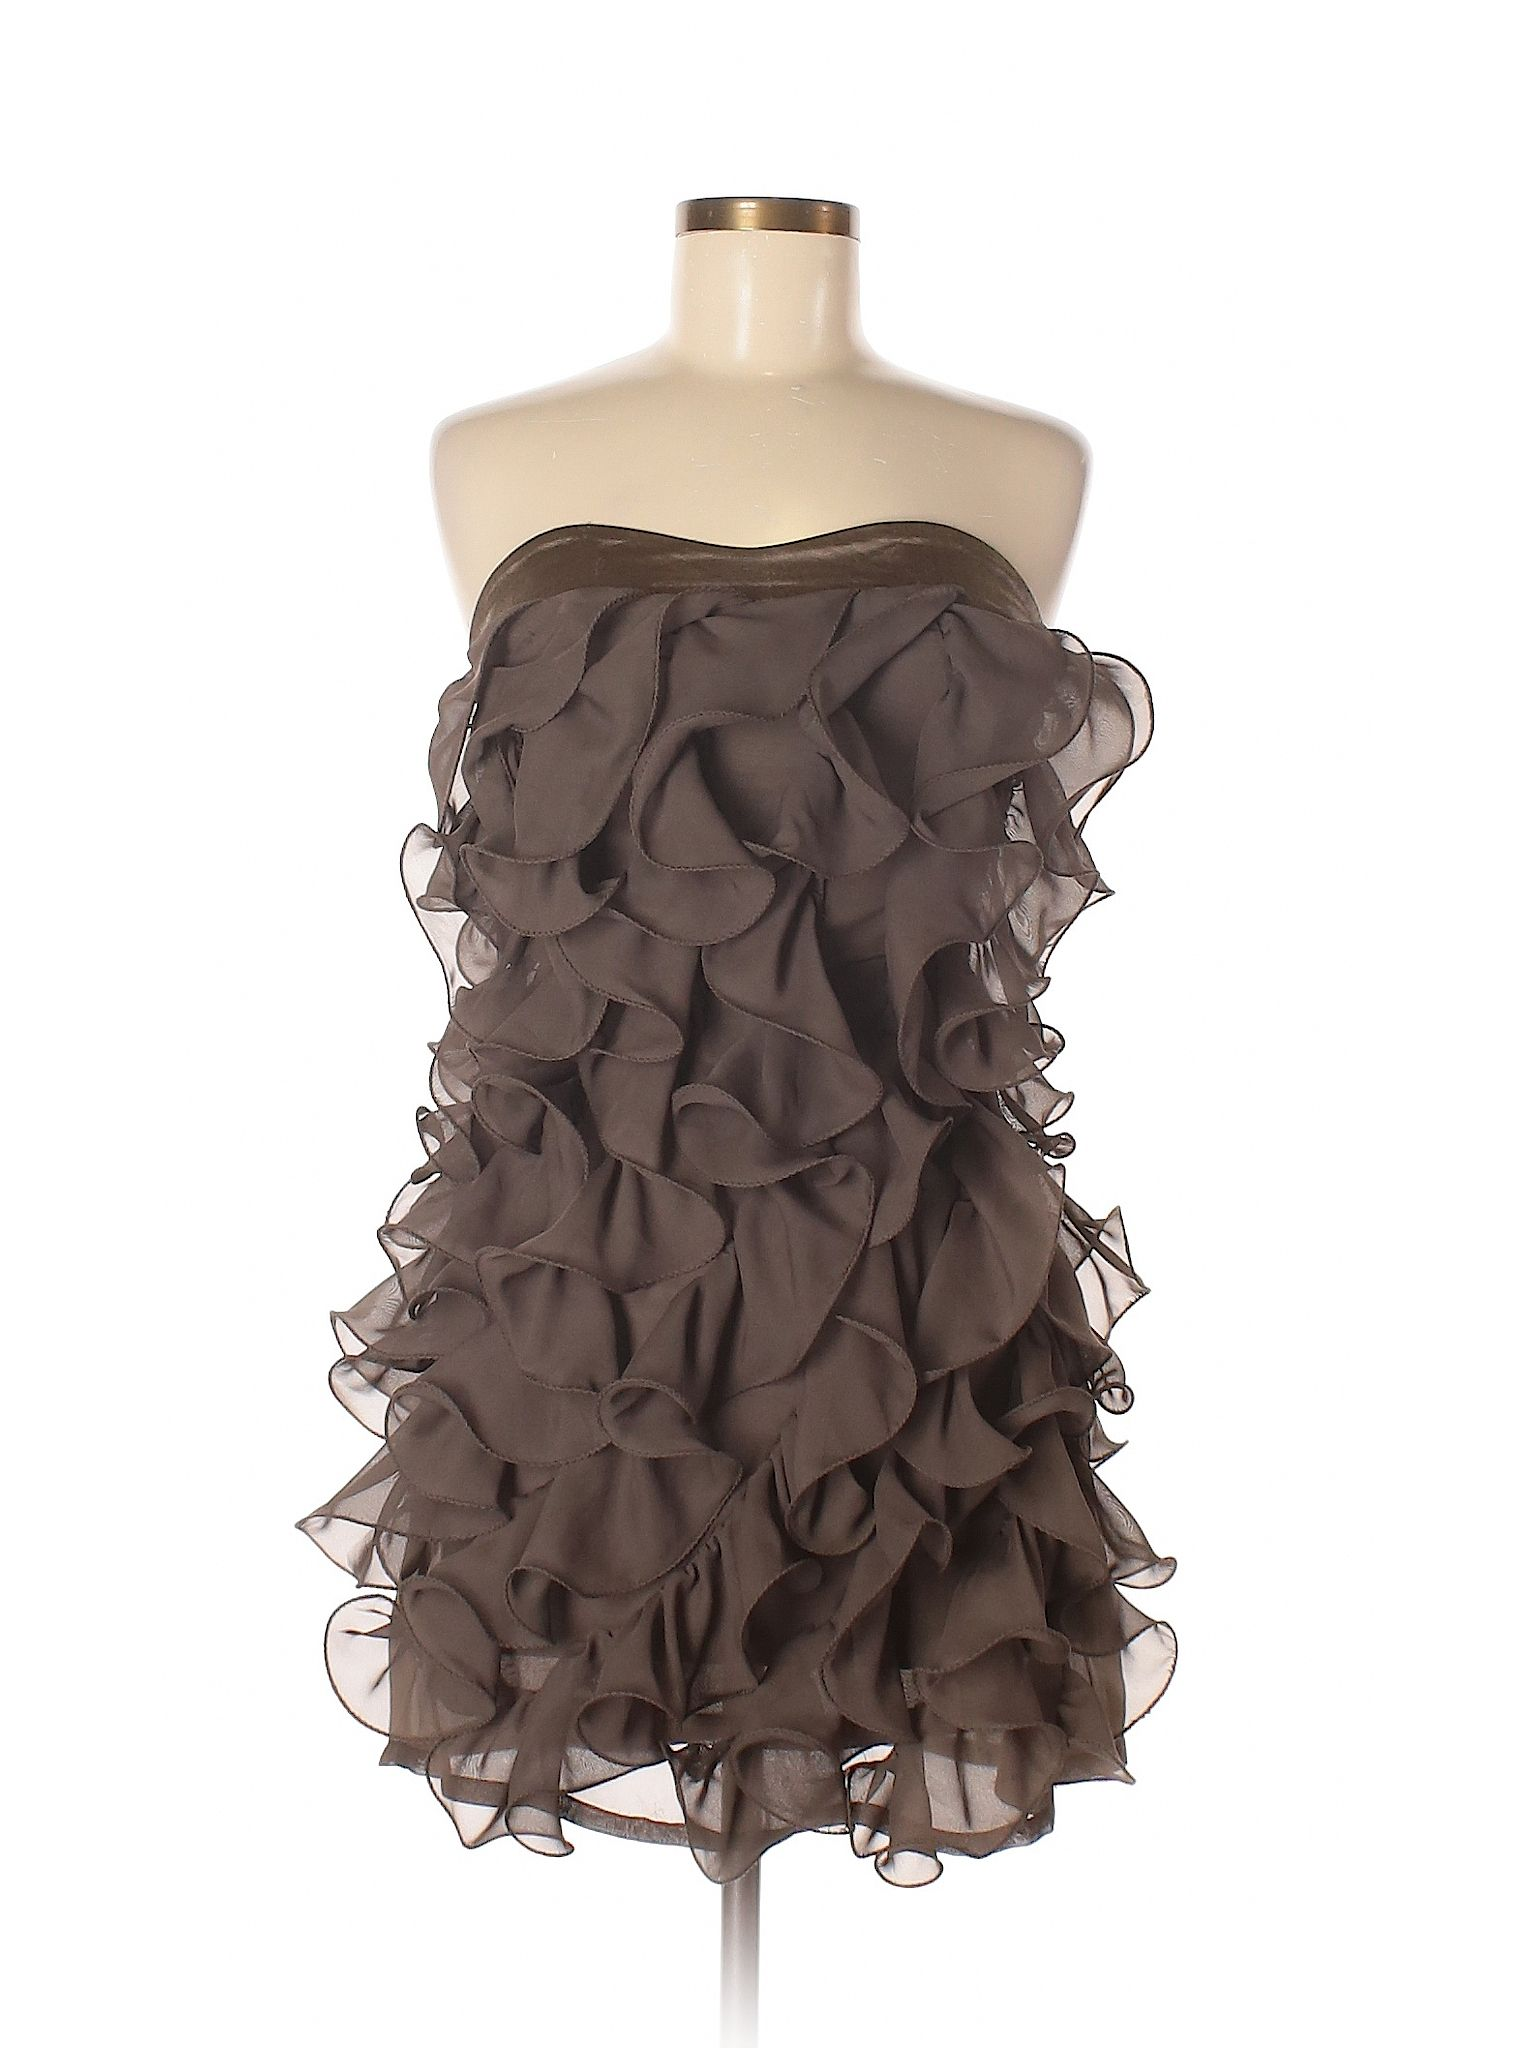 Catwalk Studio Casual Dress Size 8 00 Brown Women S Dresses New With Tags 14 99